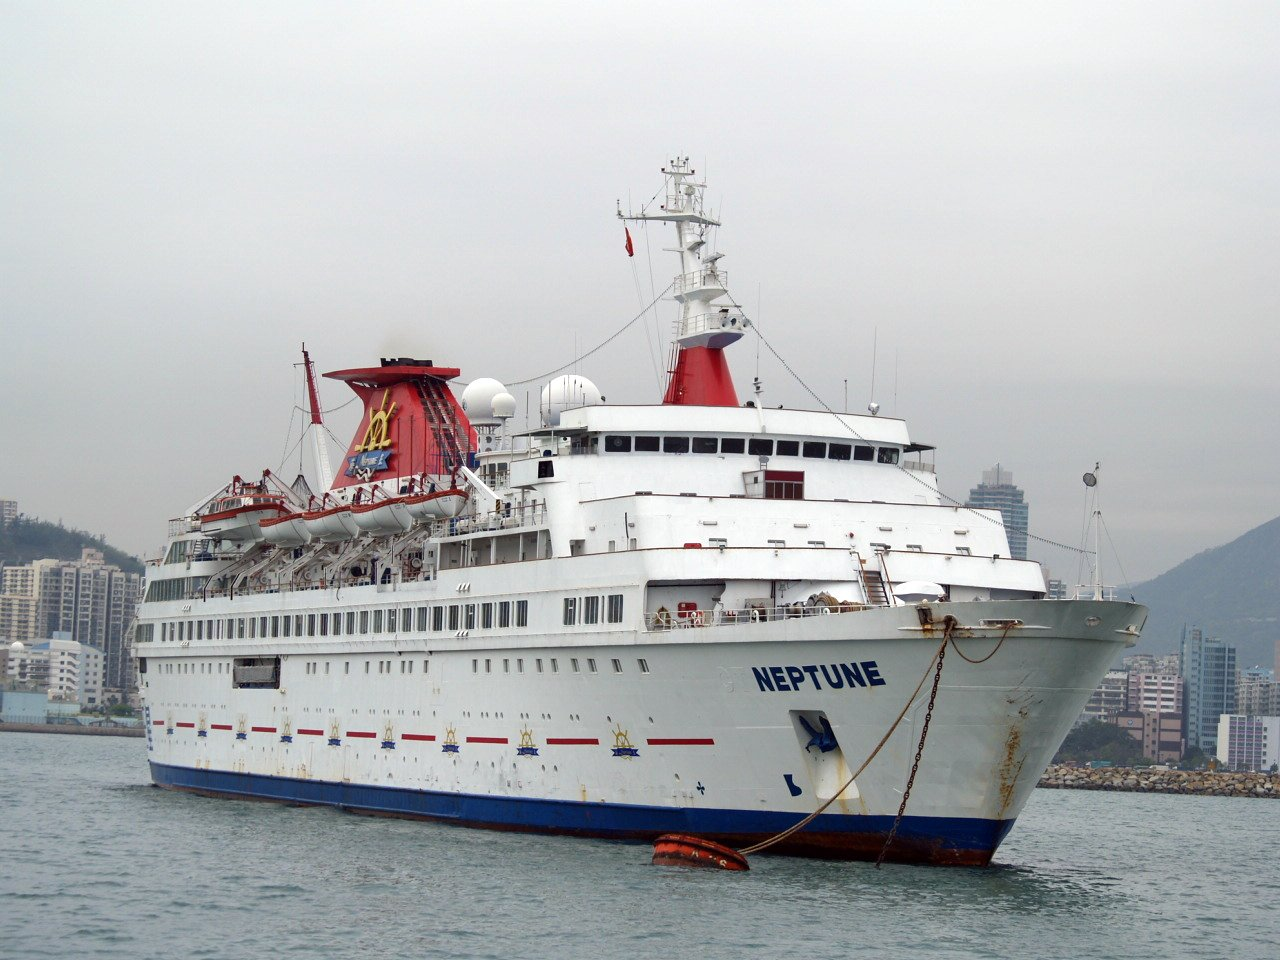 FilePassenger Cruise Ship Neptune At Hong Kongjpg